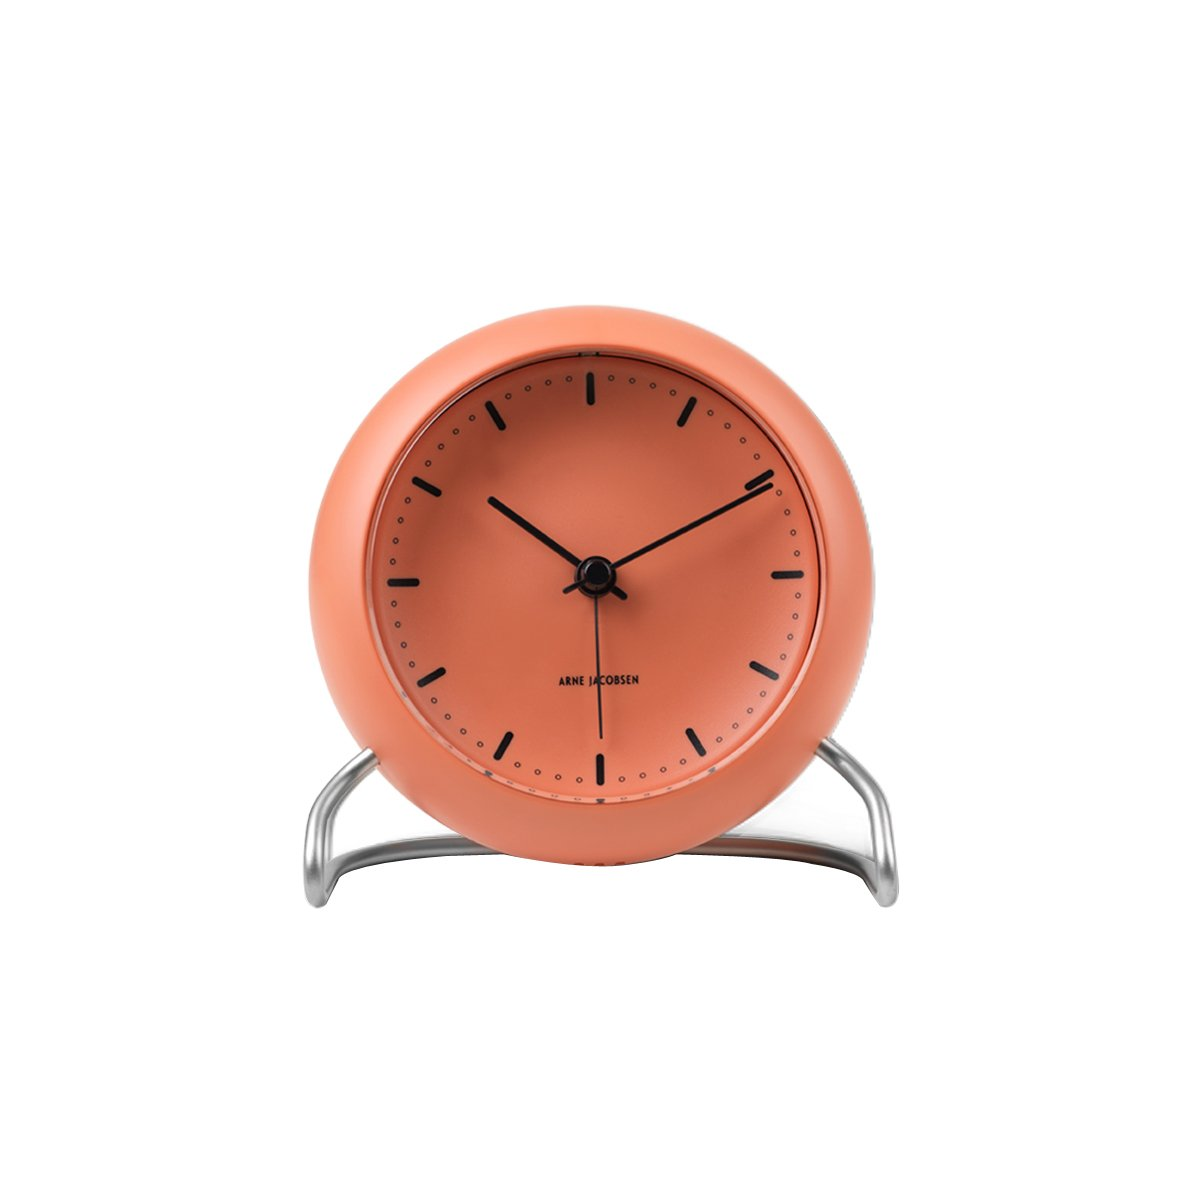 Arne Jacobsen - City Hall Table Clock - Red (43692)